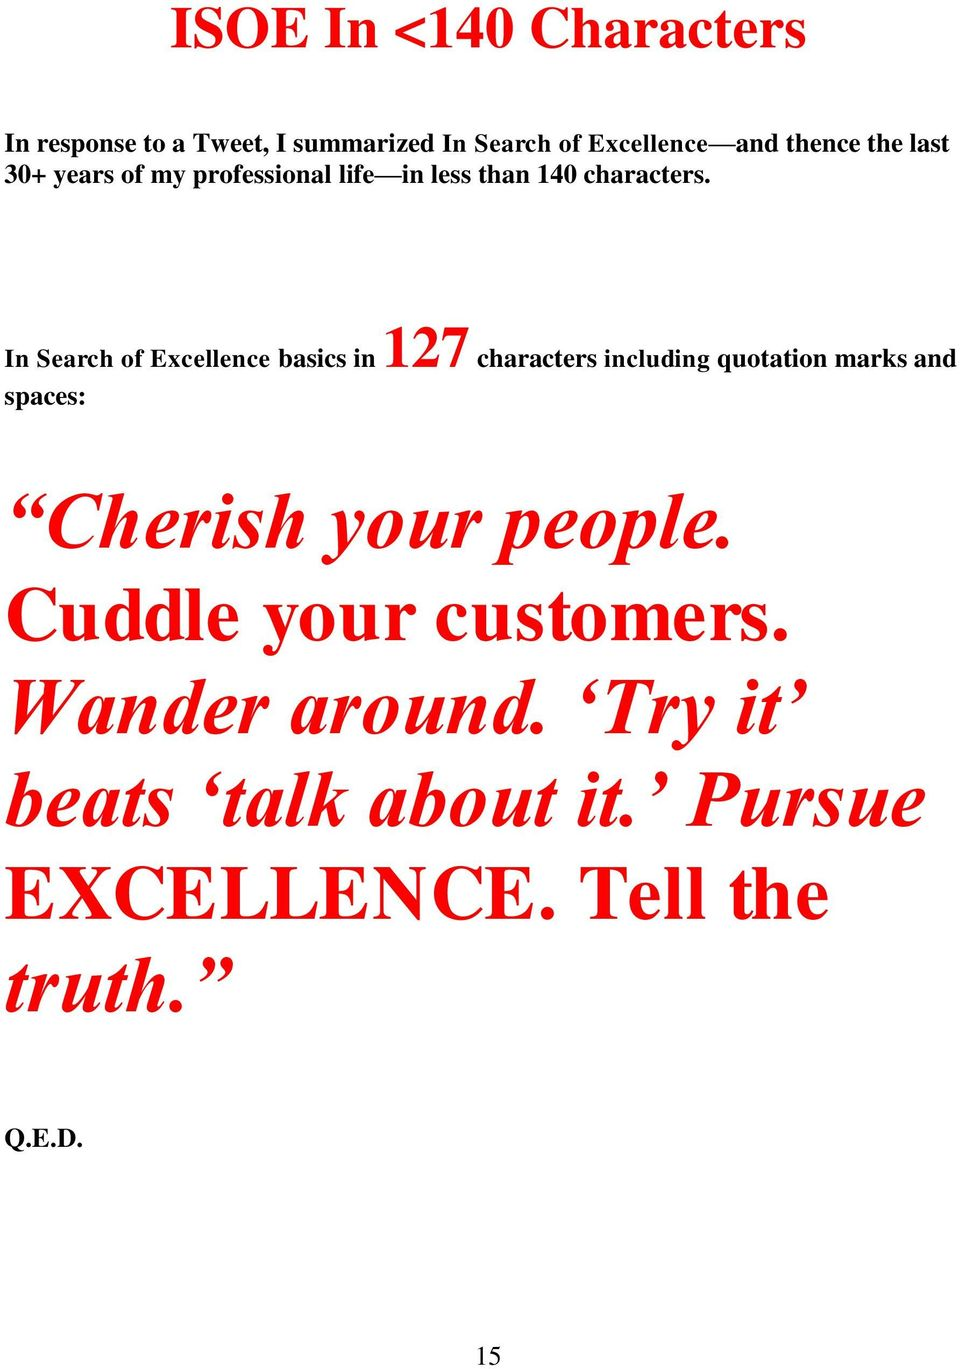 In Search of Excellence basics in 127 characters including quotation marks and spaces: Cherish